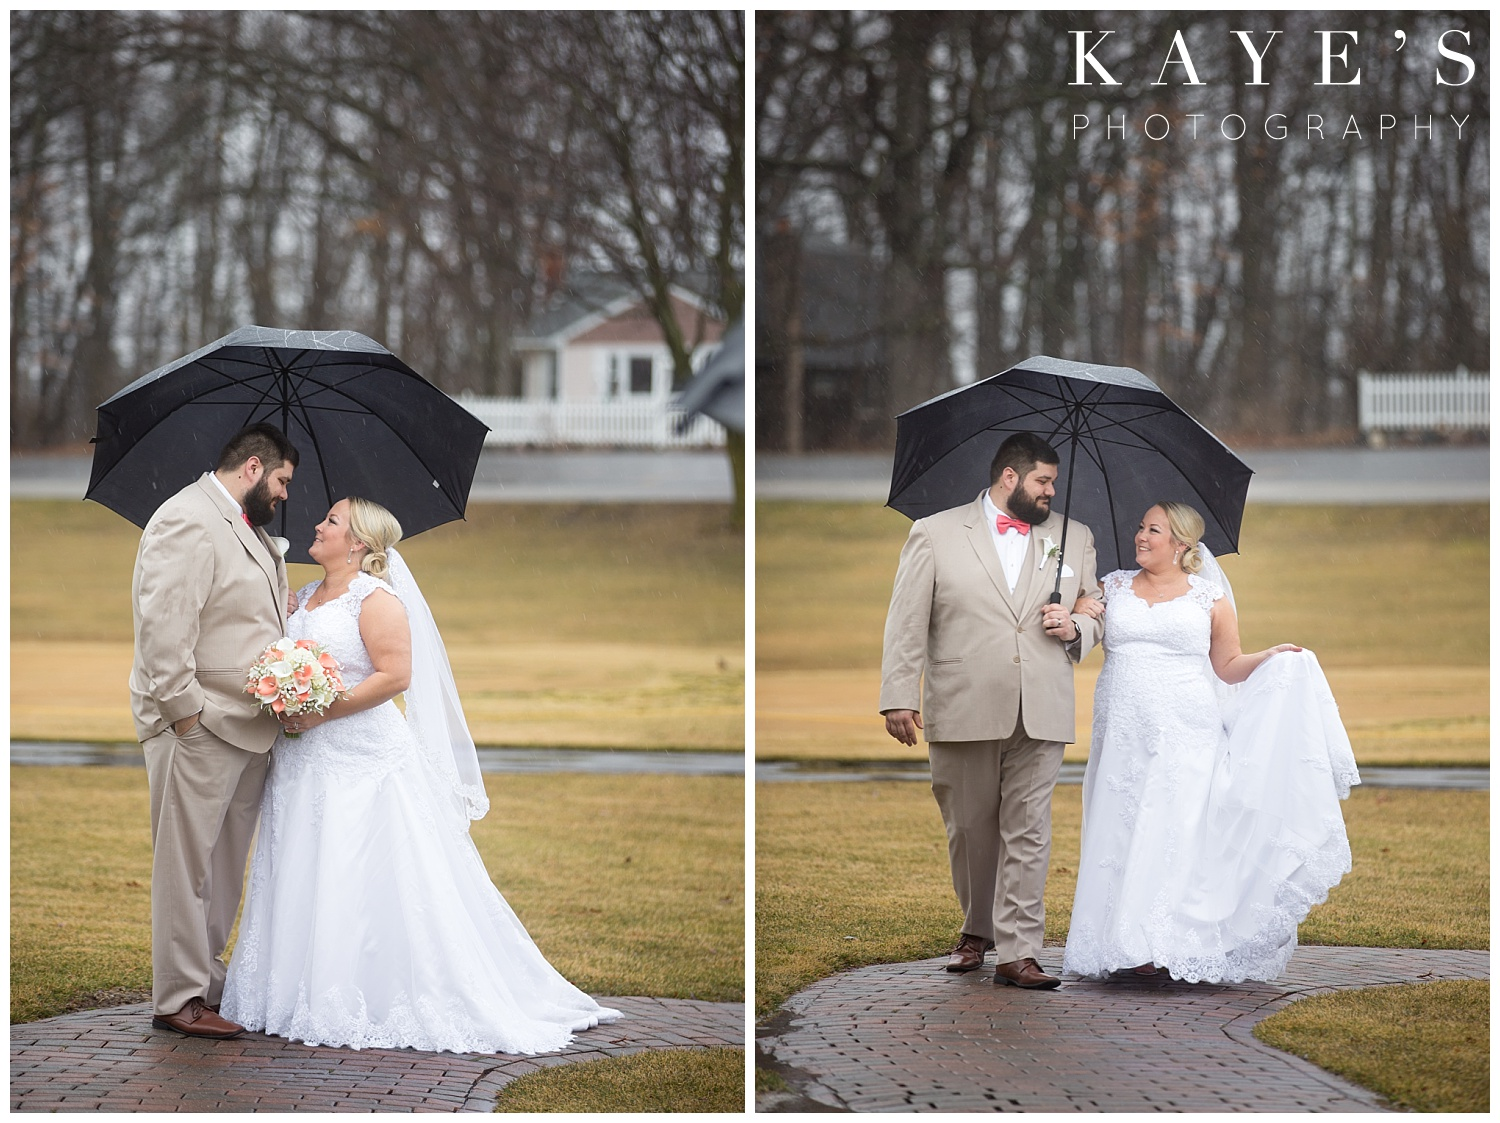 bride and groom portraits in the rain with umbrella in michigan spring wedding by kaye's photography